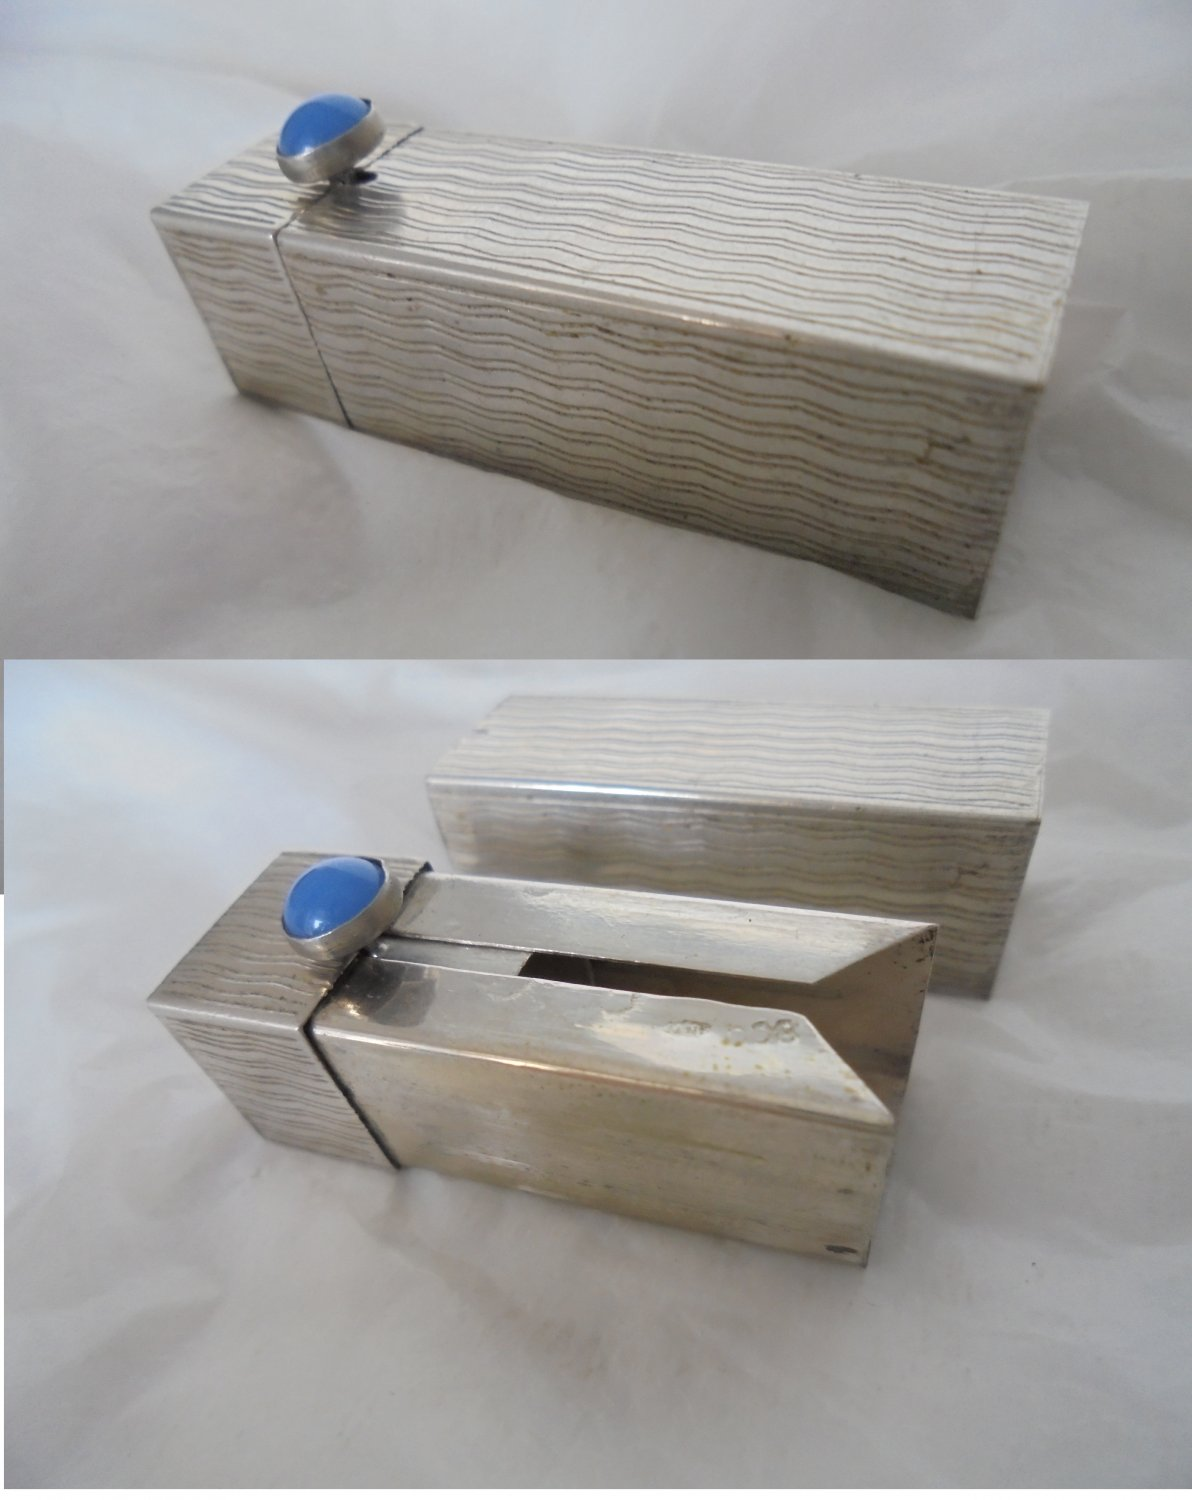 LIPSTICK stick holder case in SILVER 800 with blue stone Art DECO Original from 1950s